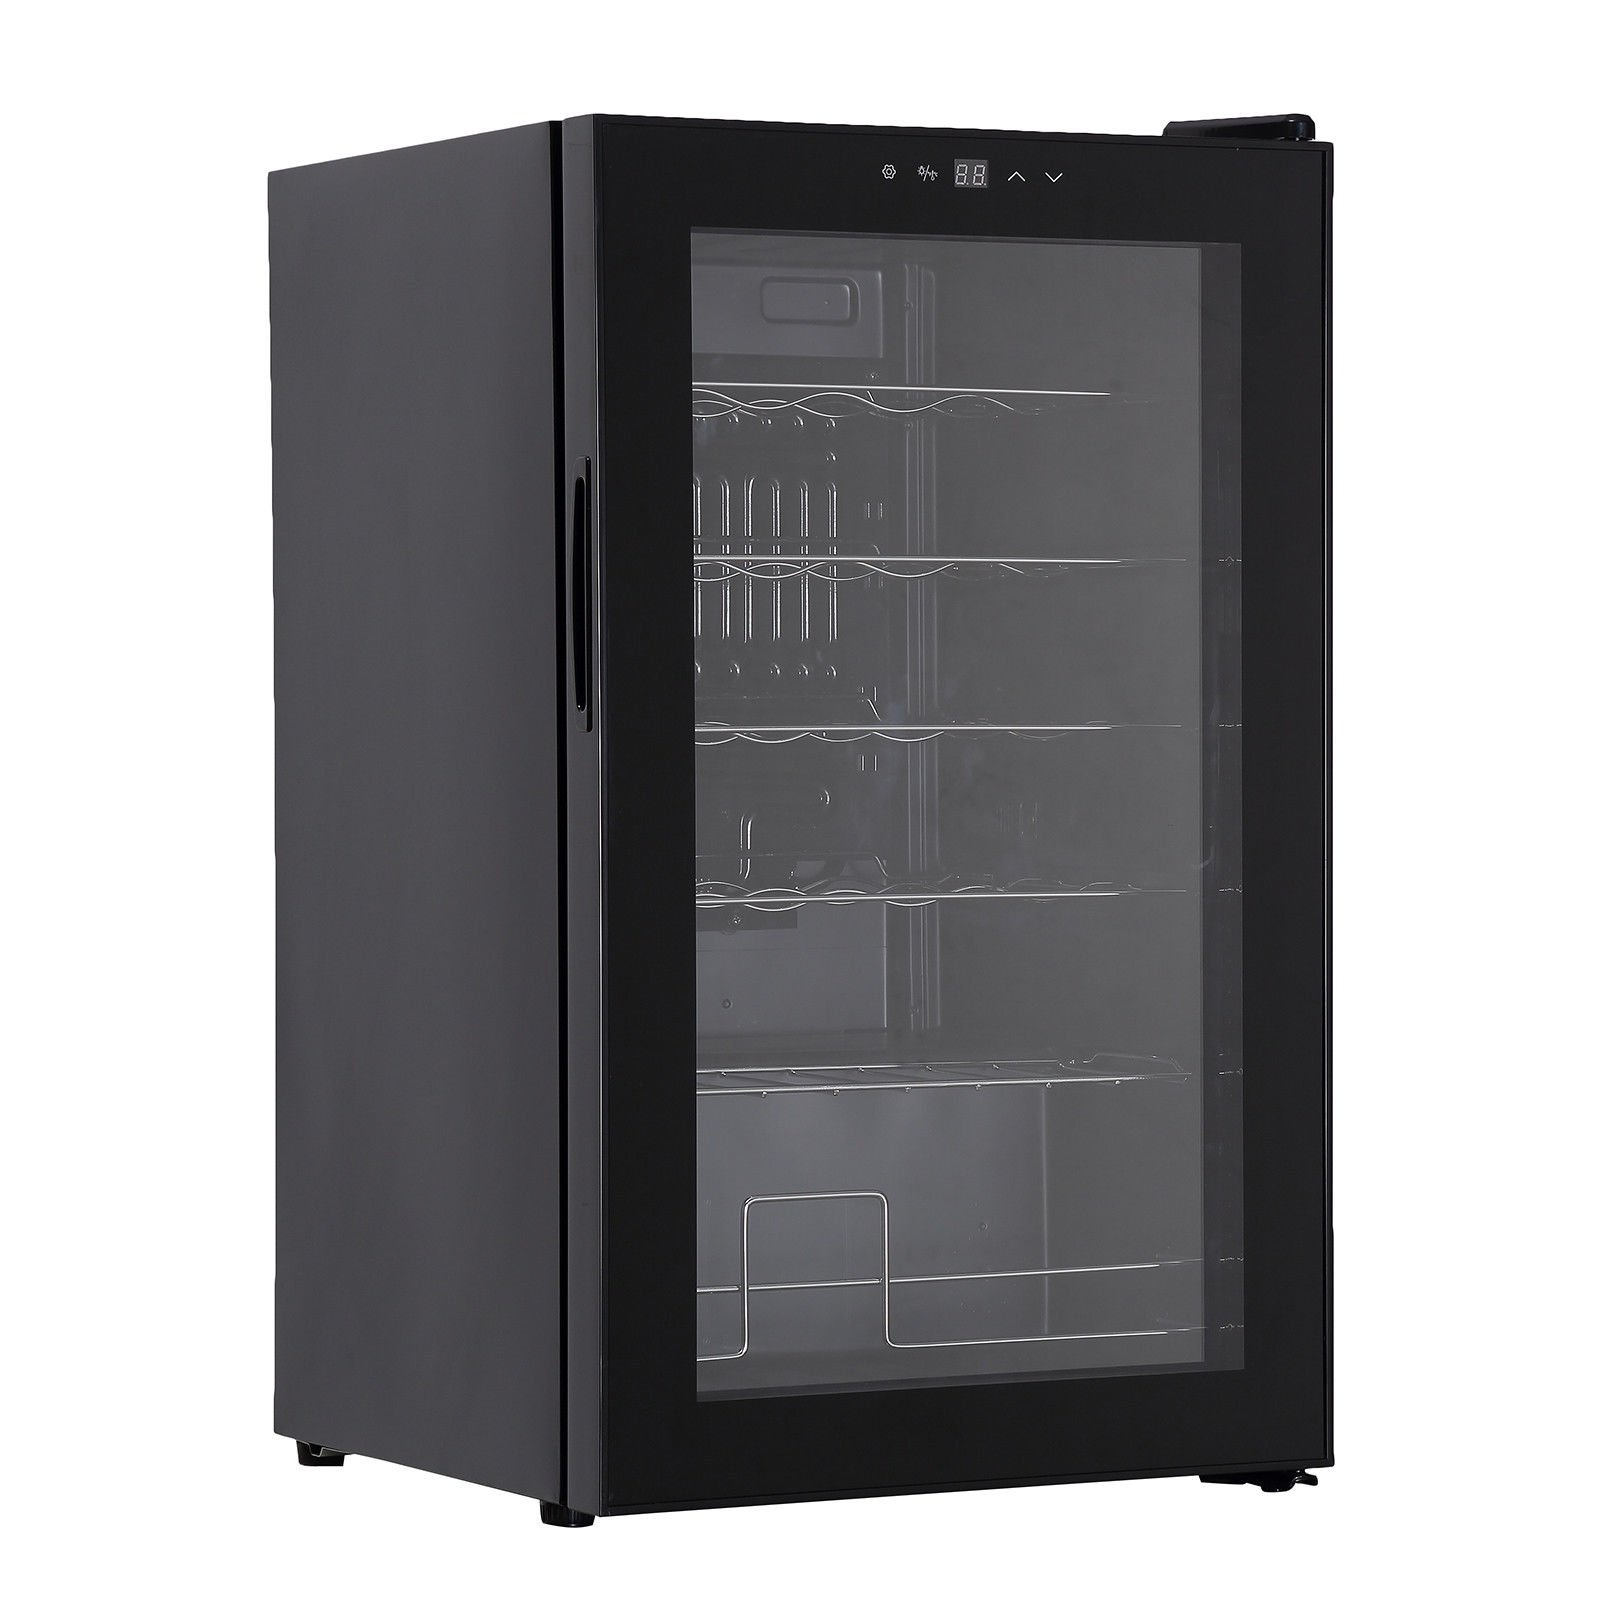 Freestanding Compress Fridge Cabin Thermoelectric Wine Cooler for 28 Bottles by onestops8